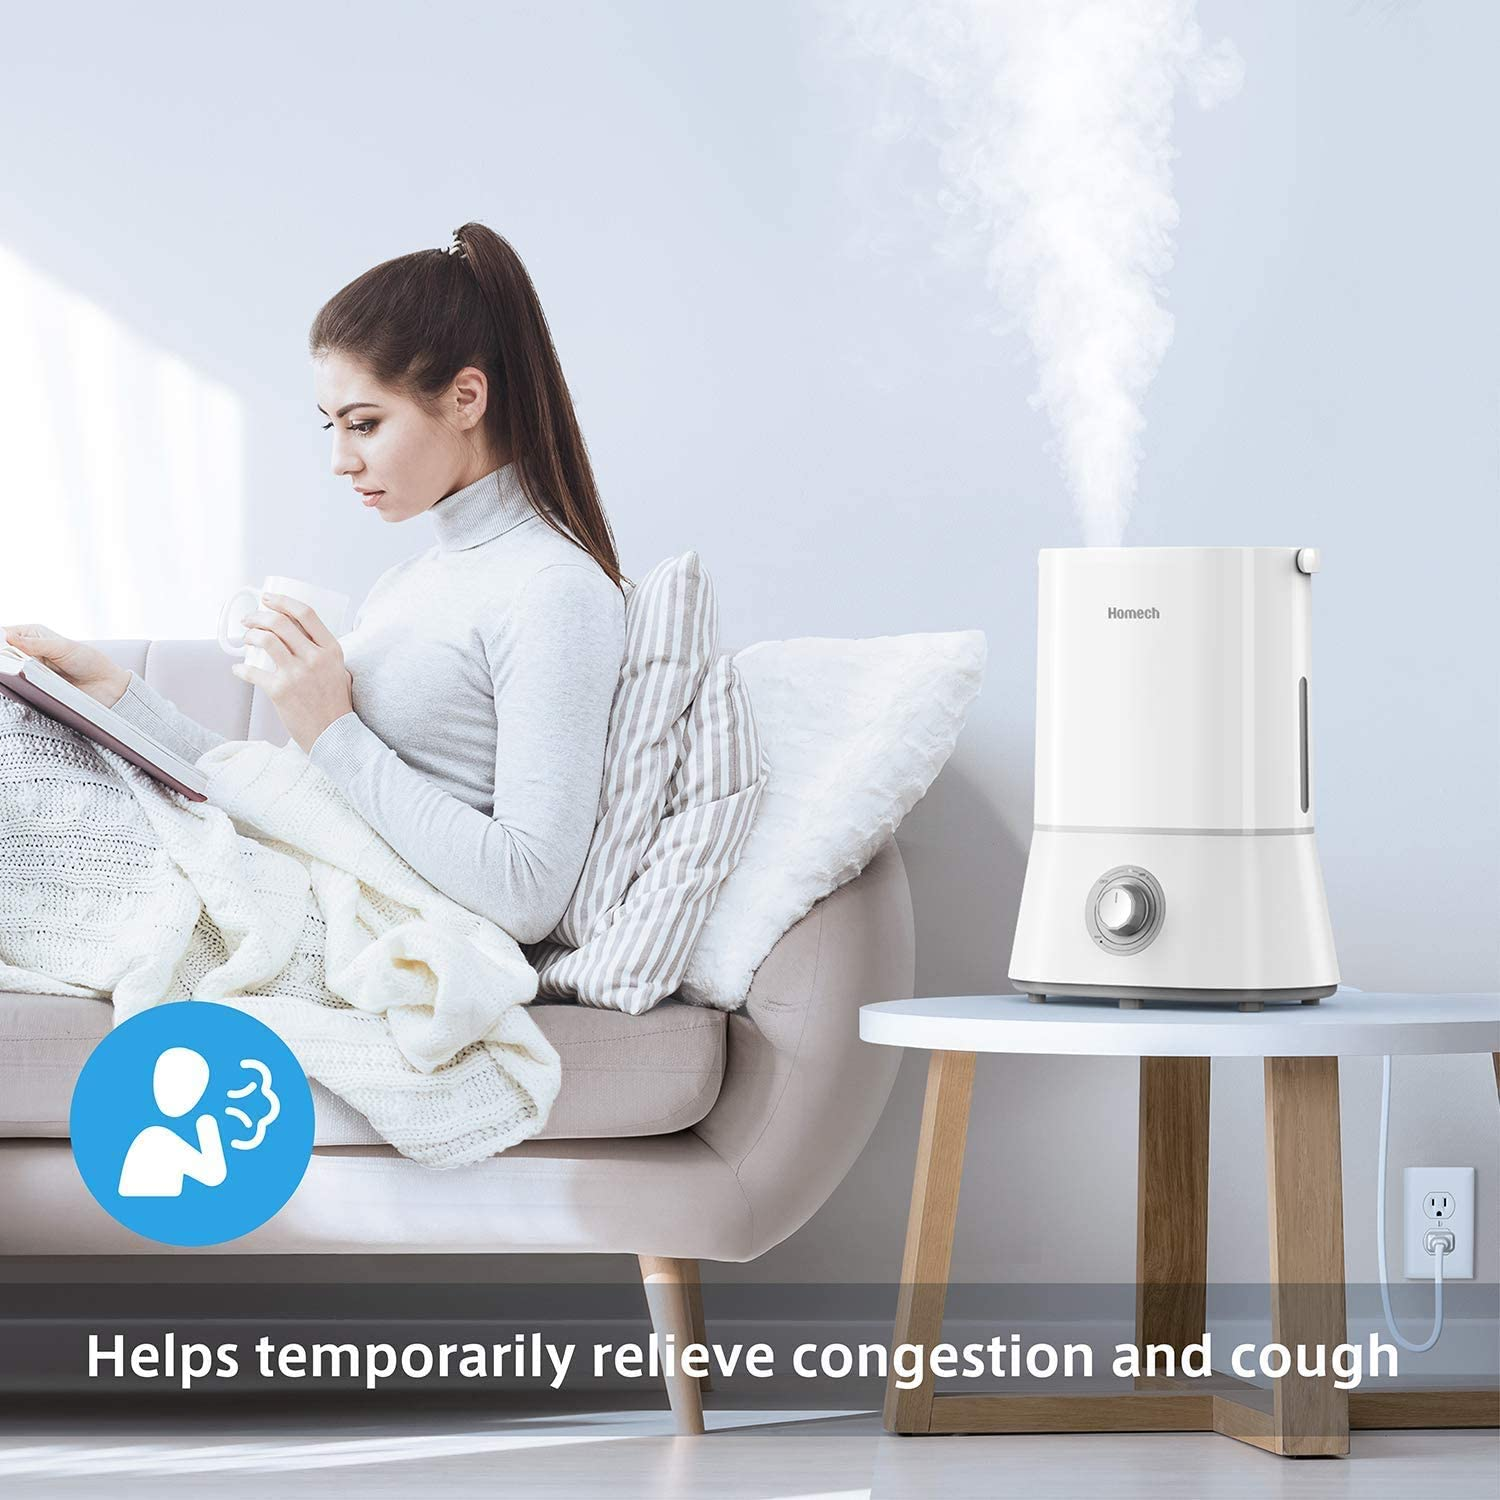 Homech Cool Mist Humidifier, Quiet Ultrasonic Humidifier for Bedroom Home Baby 12 60 Hours, Easy to Clean, 360 ° Nozzle, Waterless Auto Shut Off